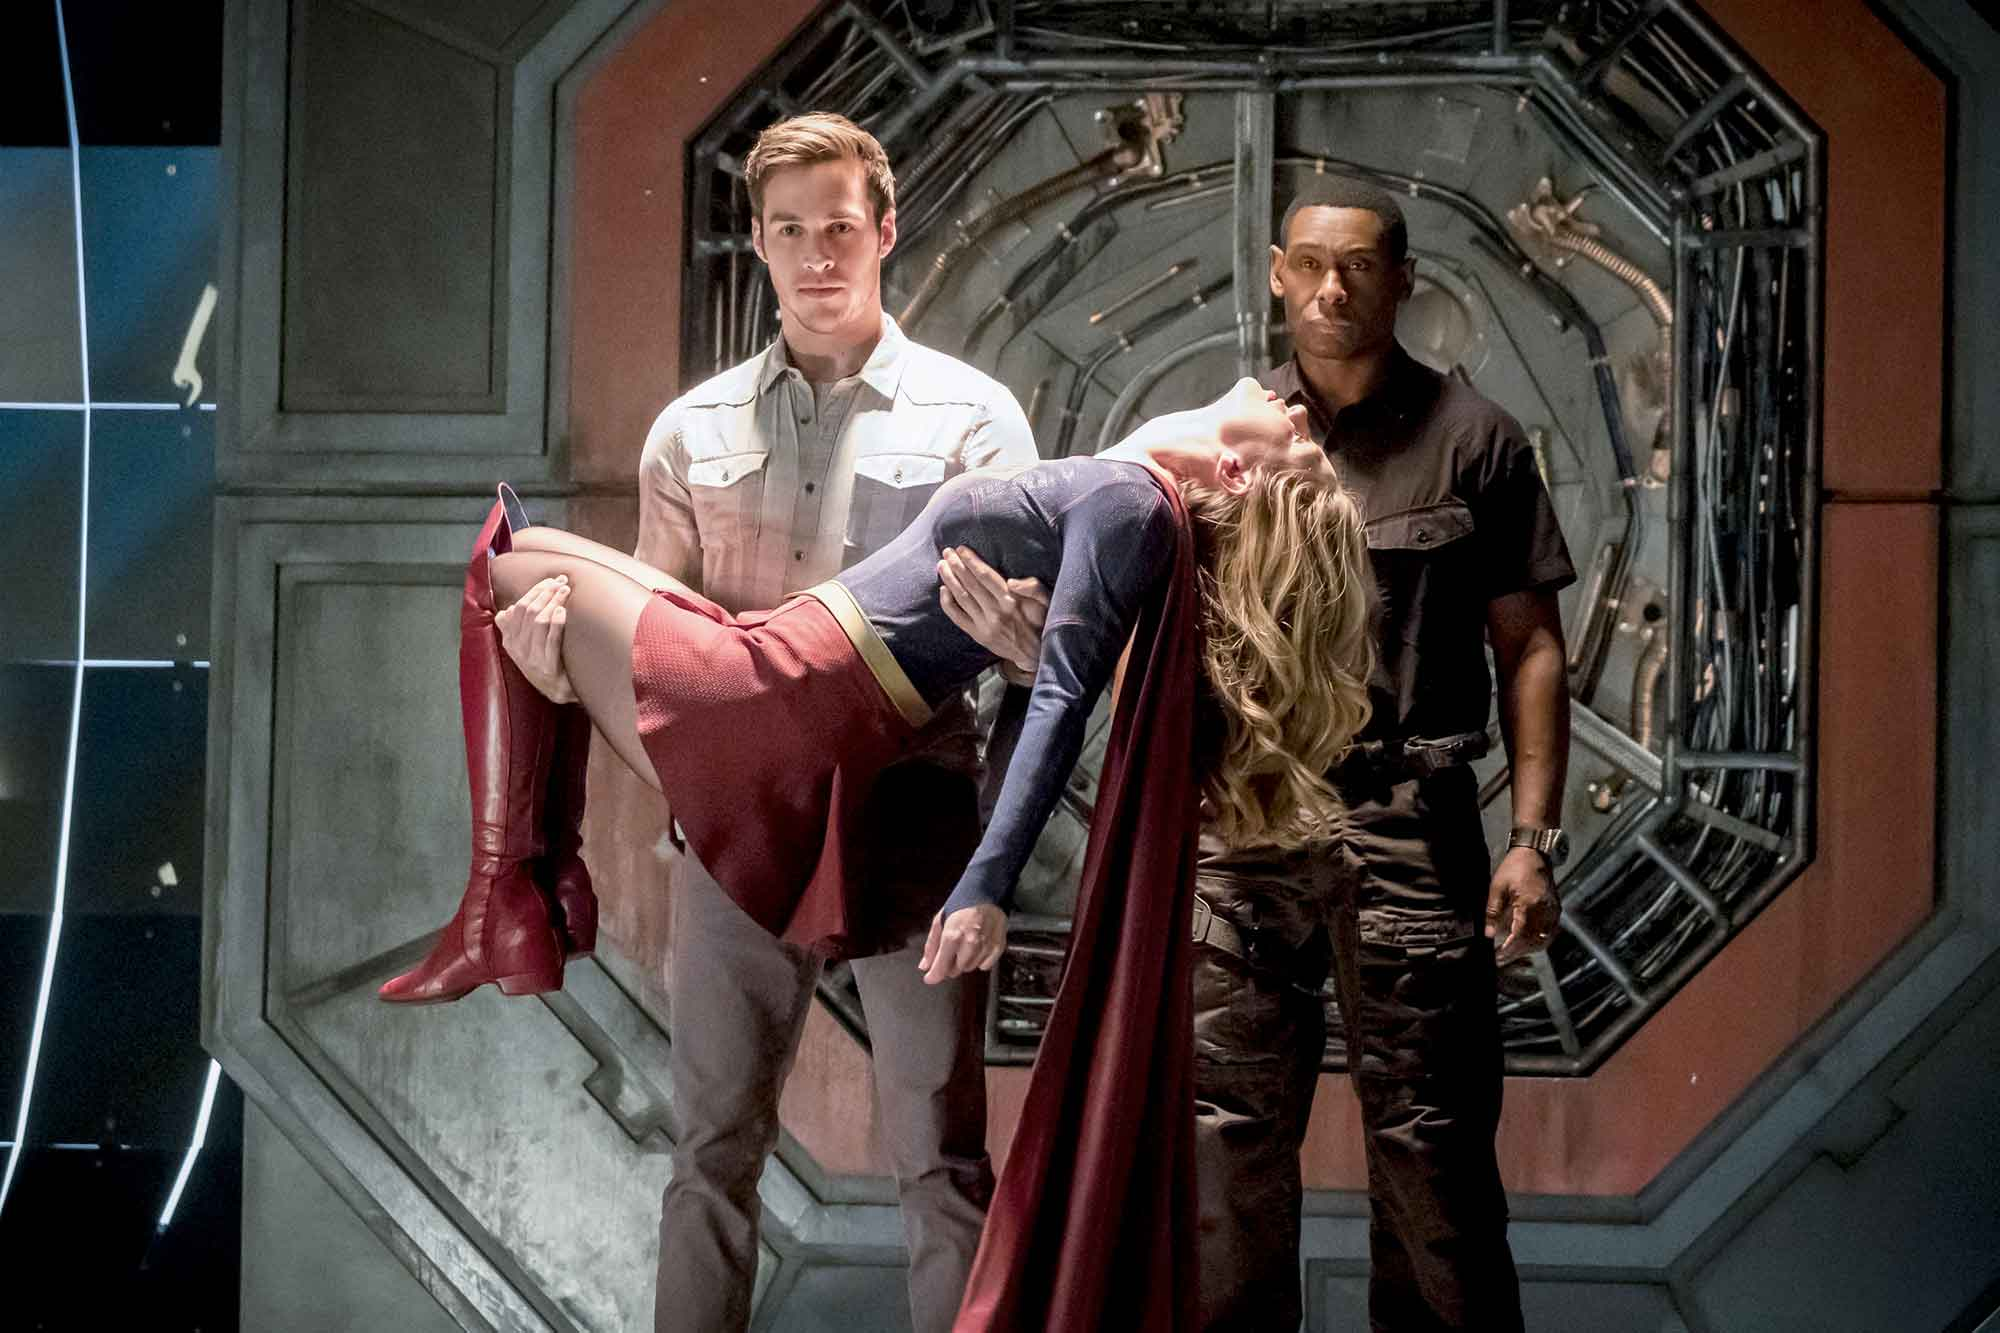 Series Imágenes The Flash 3x17 Duet Crossover Musical Con Supergirl Bds